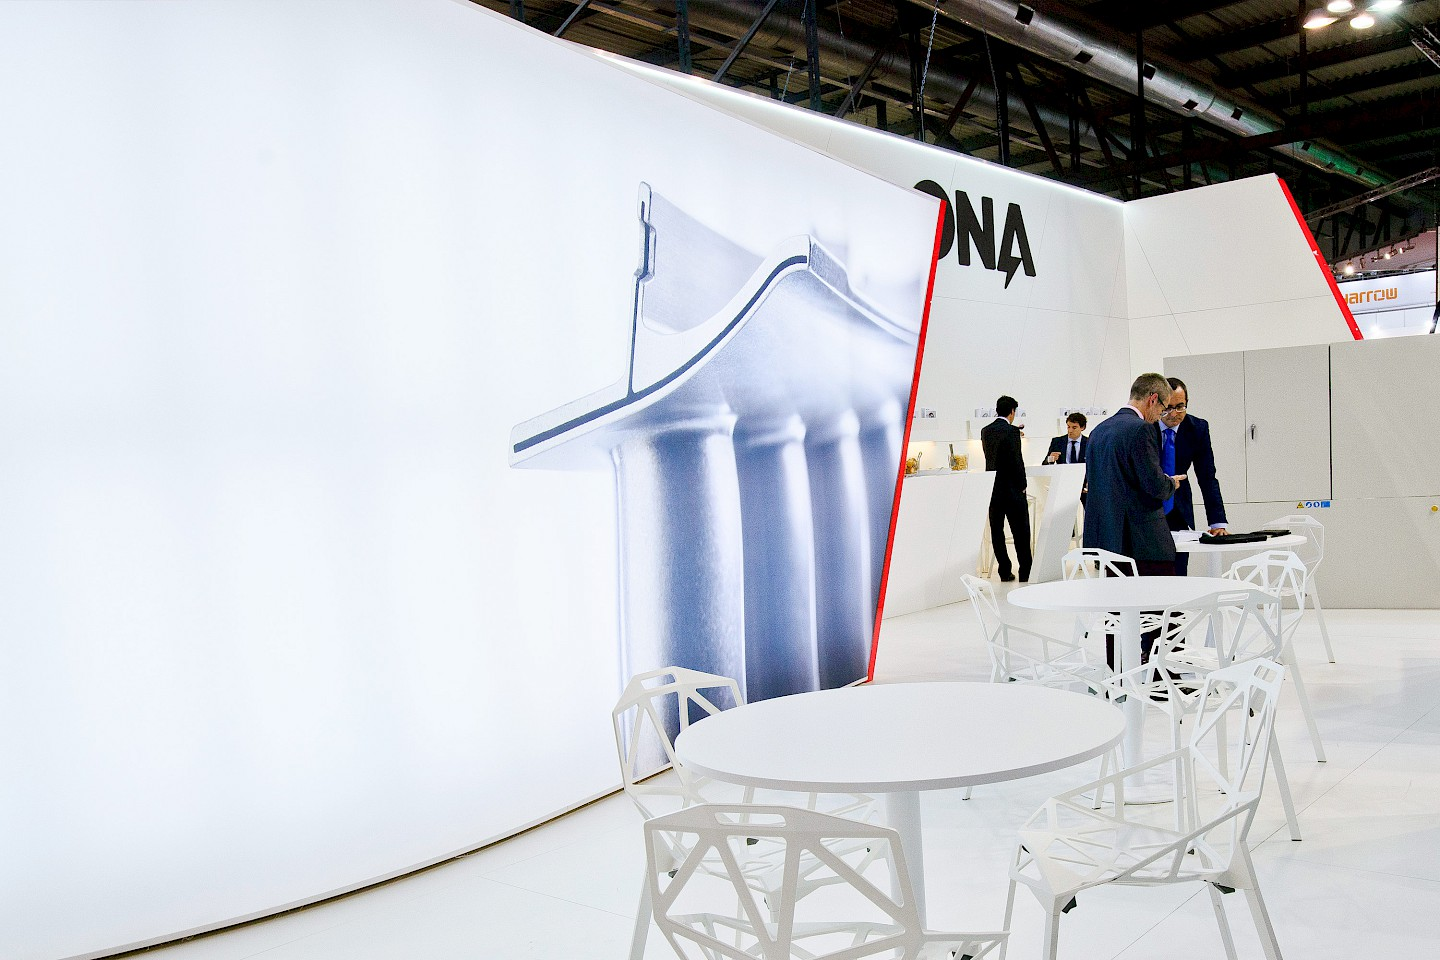 interiorismo narrative 05 design move digital stand branding ona spaces technology